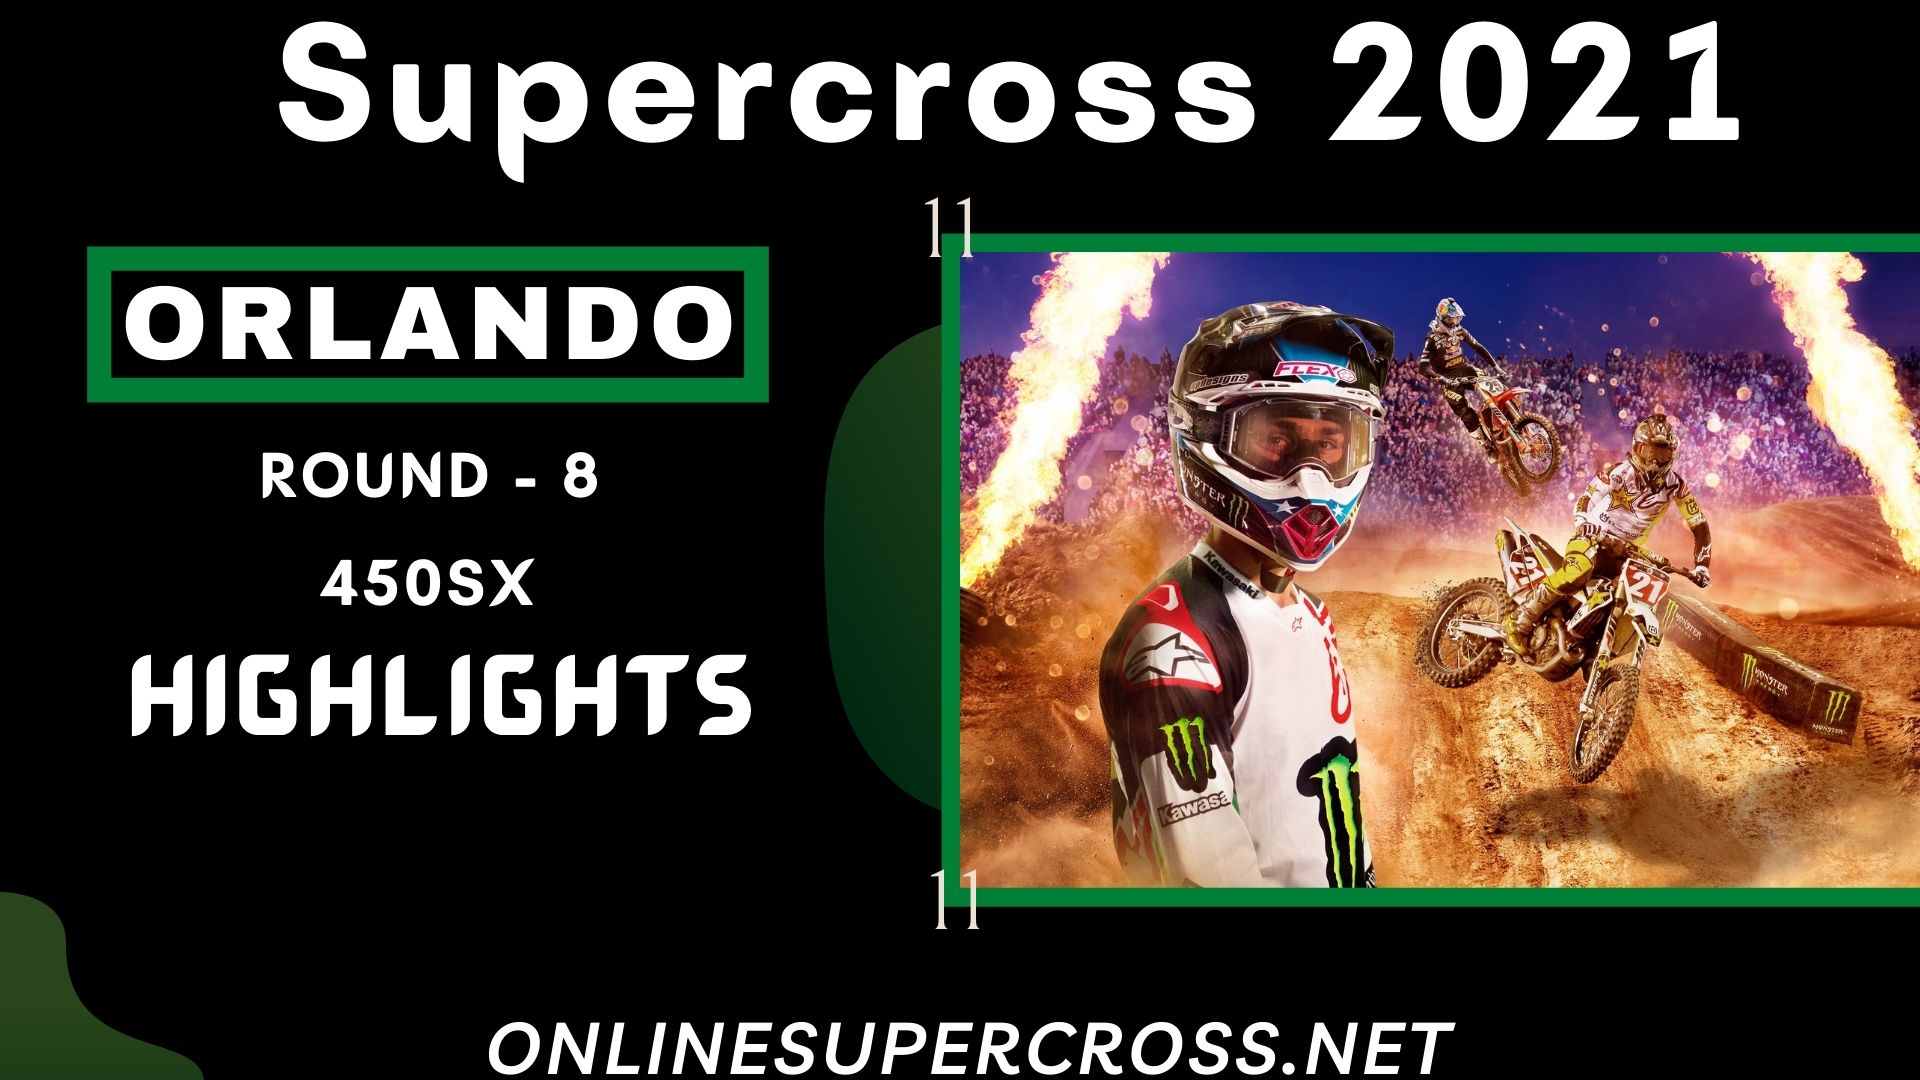 Orlando Round 8 Supercross 450SX Highlights 2021